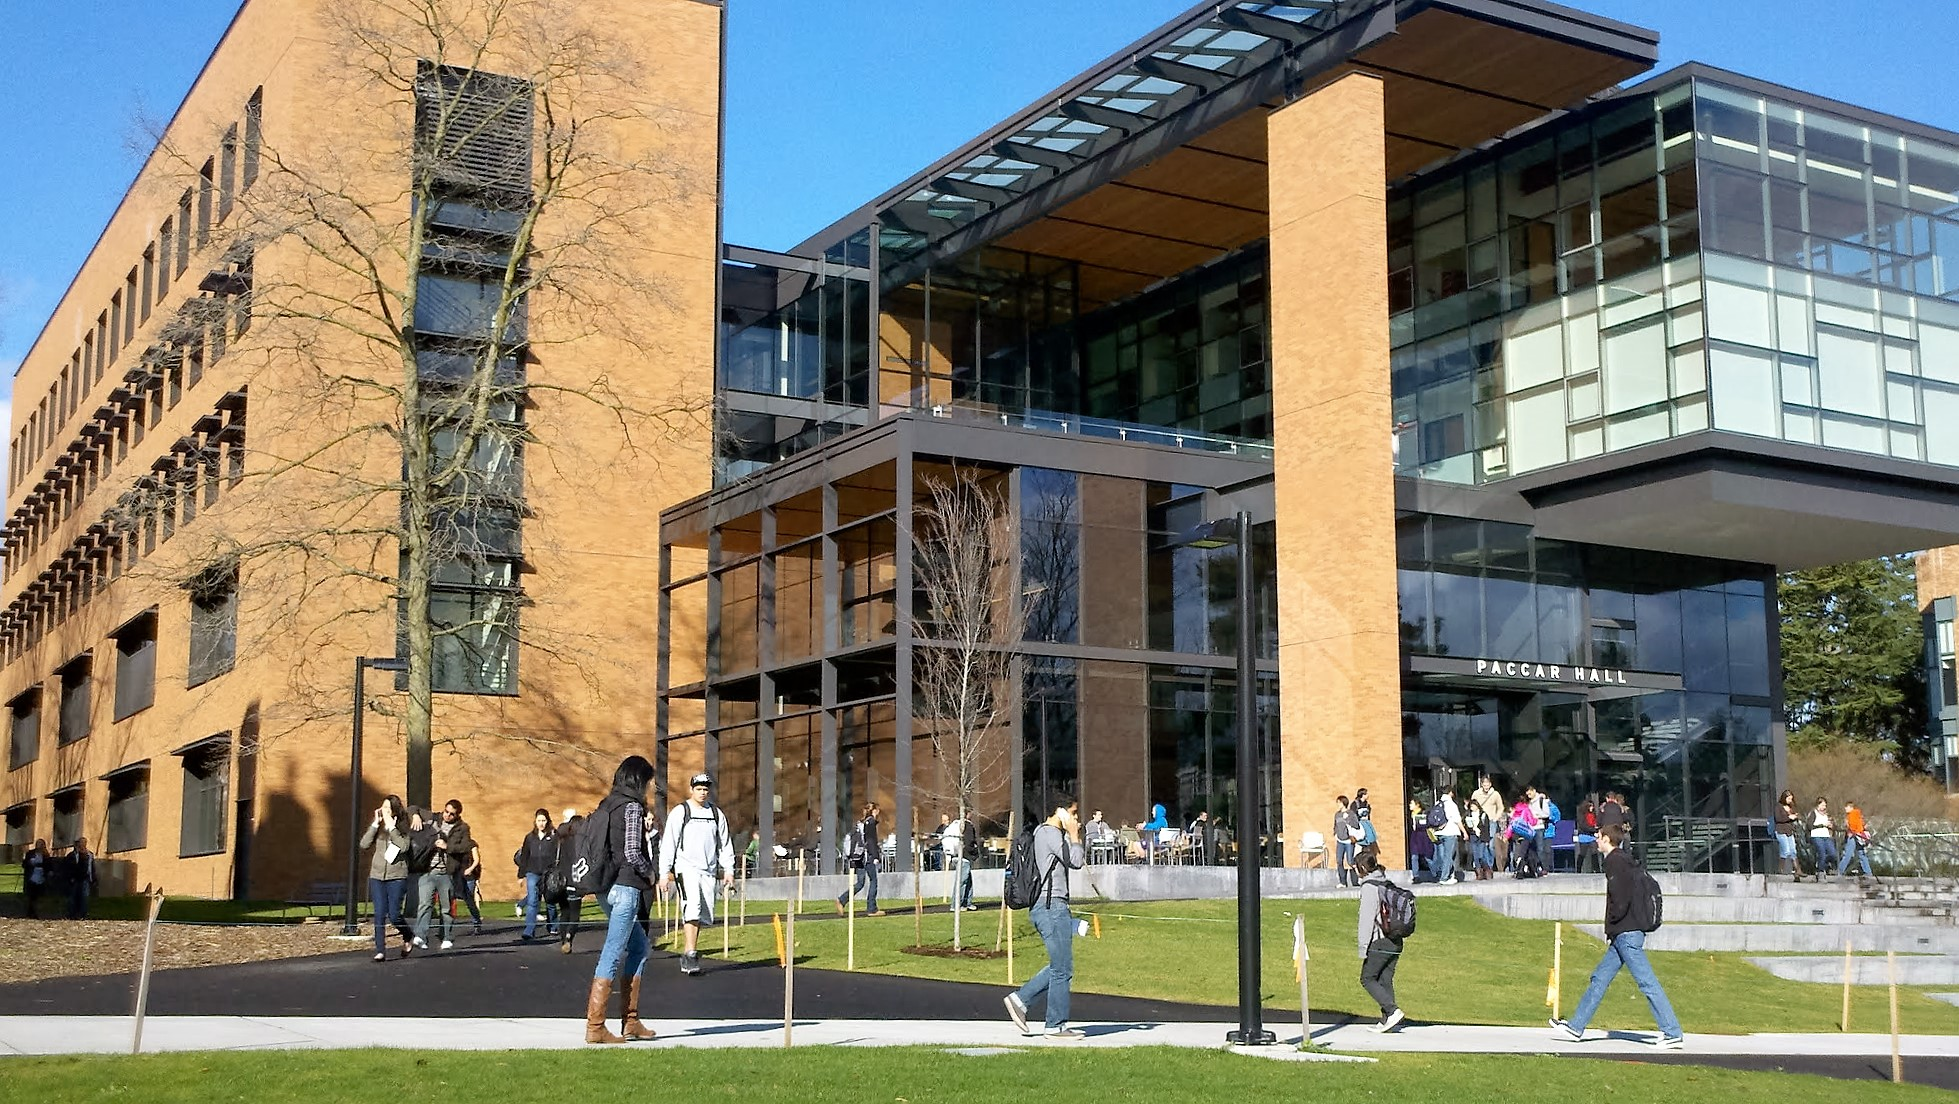 University of Washington - Foster School of Business